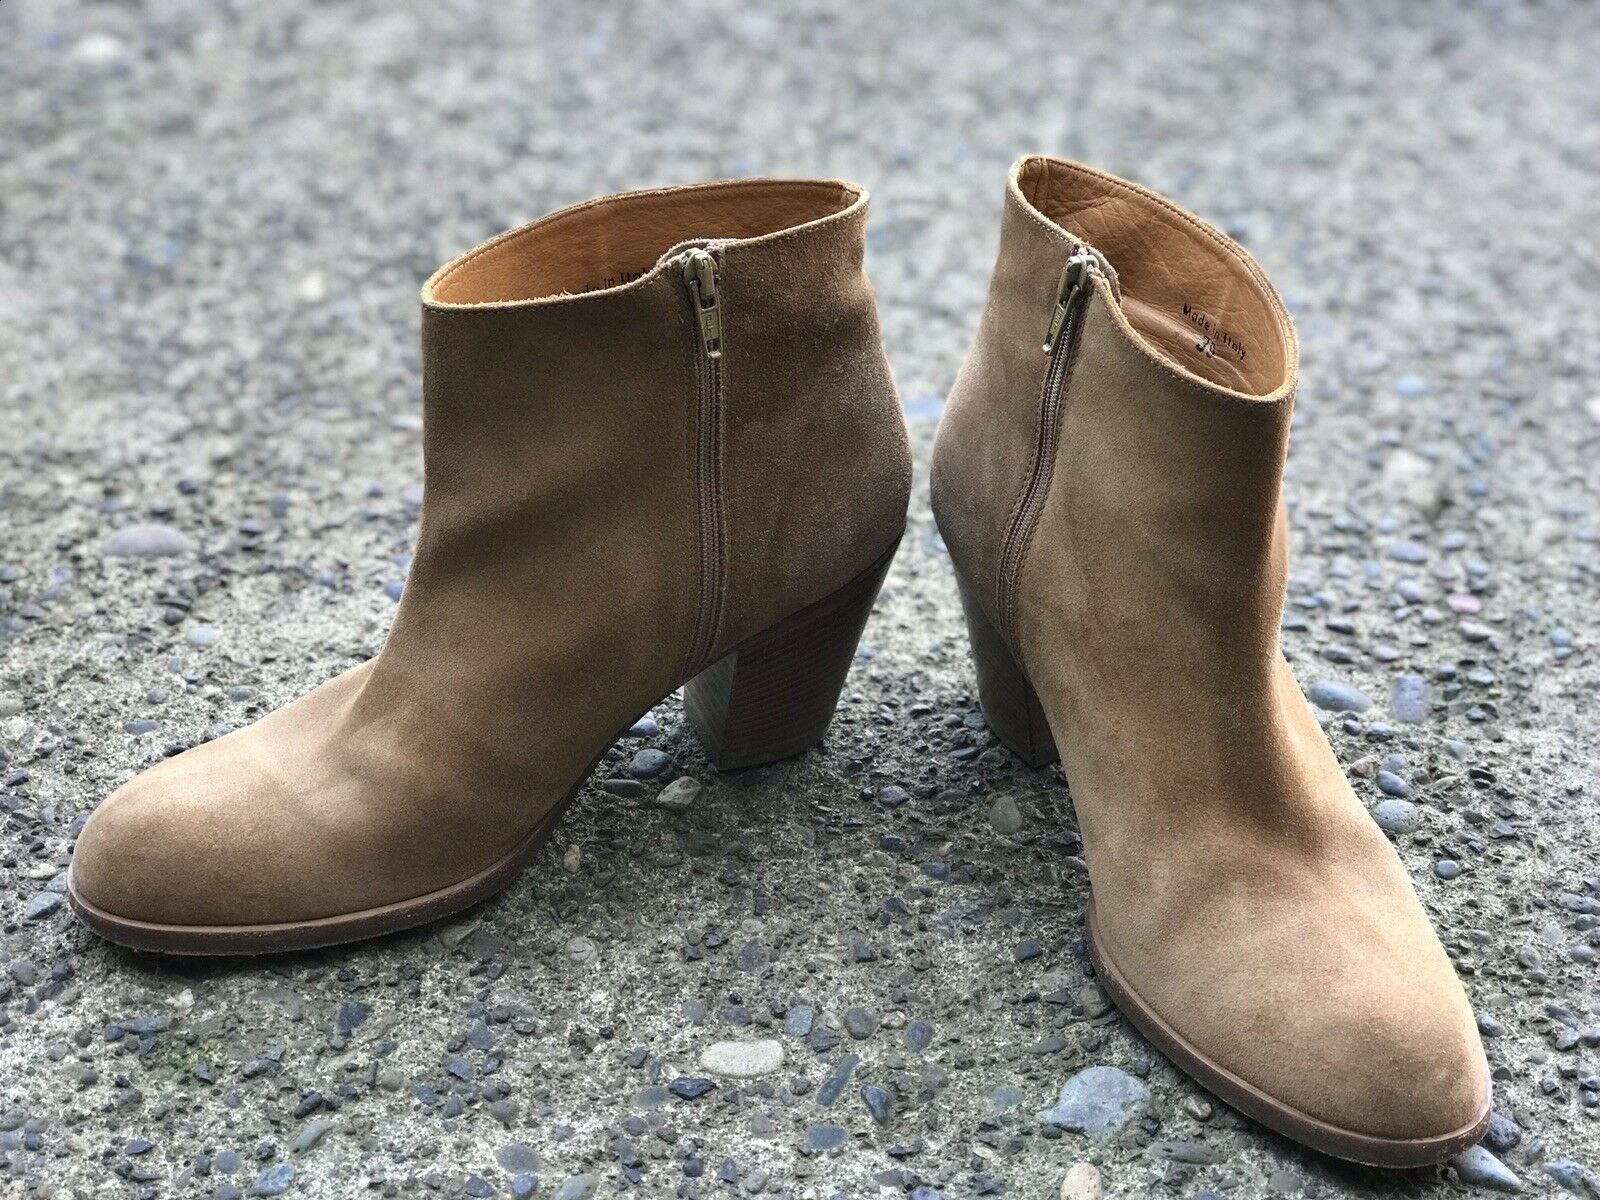 10022-scarpe Saks Fifth Avenue NY Tan Suede Ankle stivali EU 39 (US 9) Made in